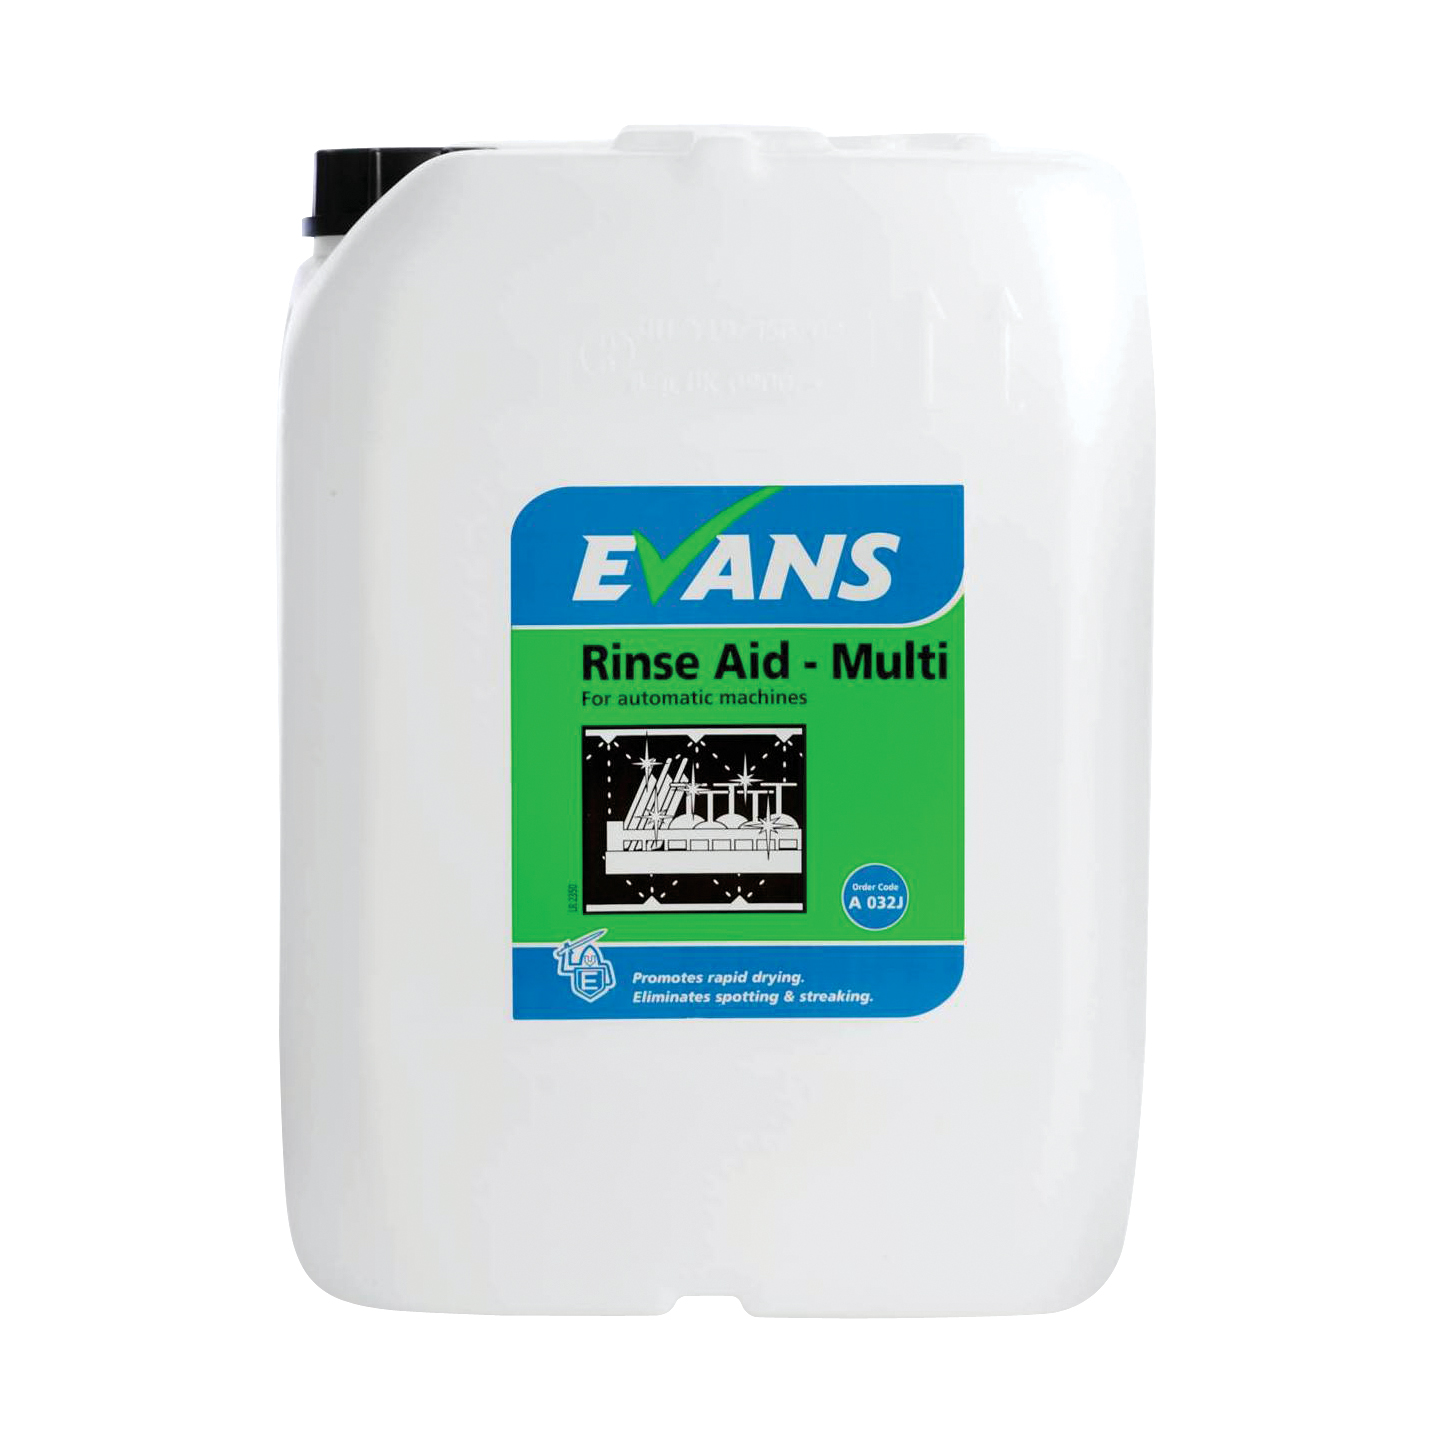 Evans Machine Rinse Aid Multi (20ltr)